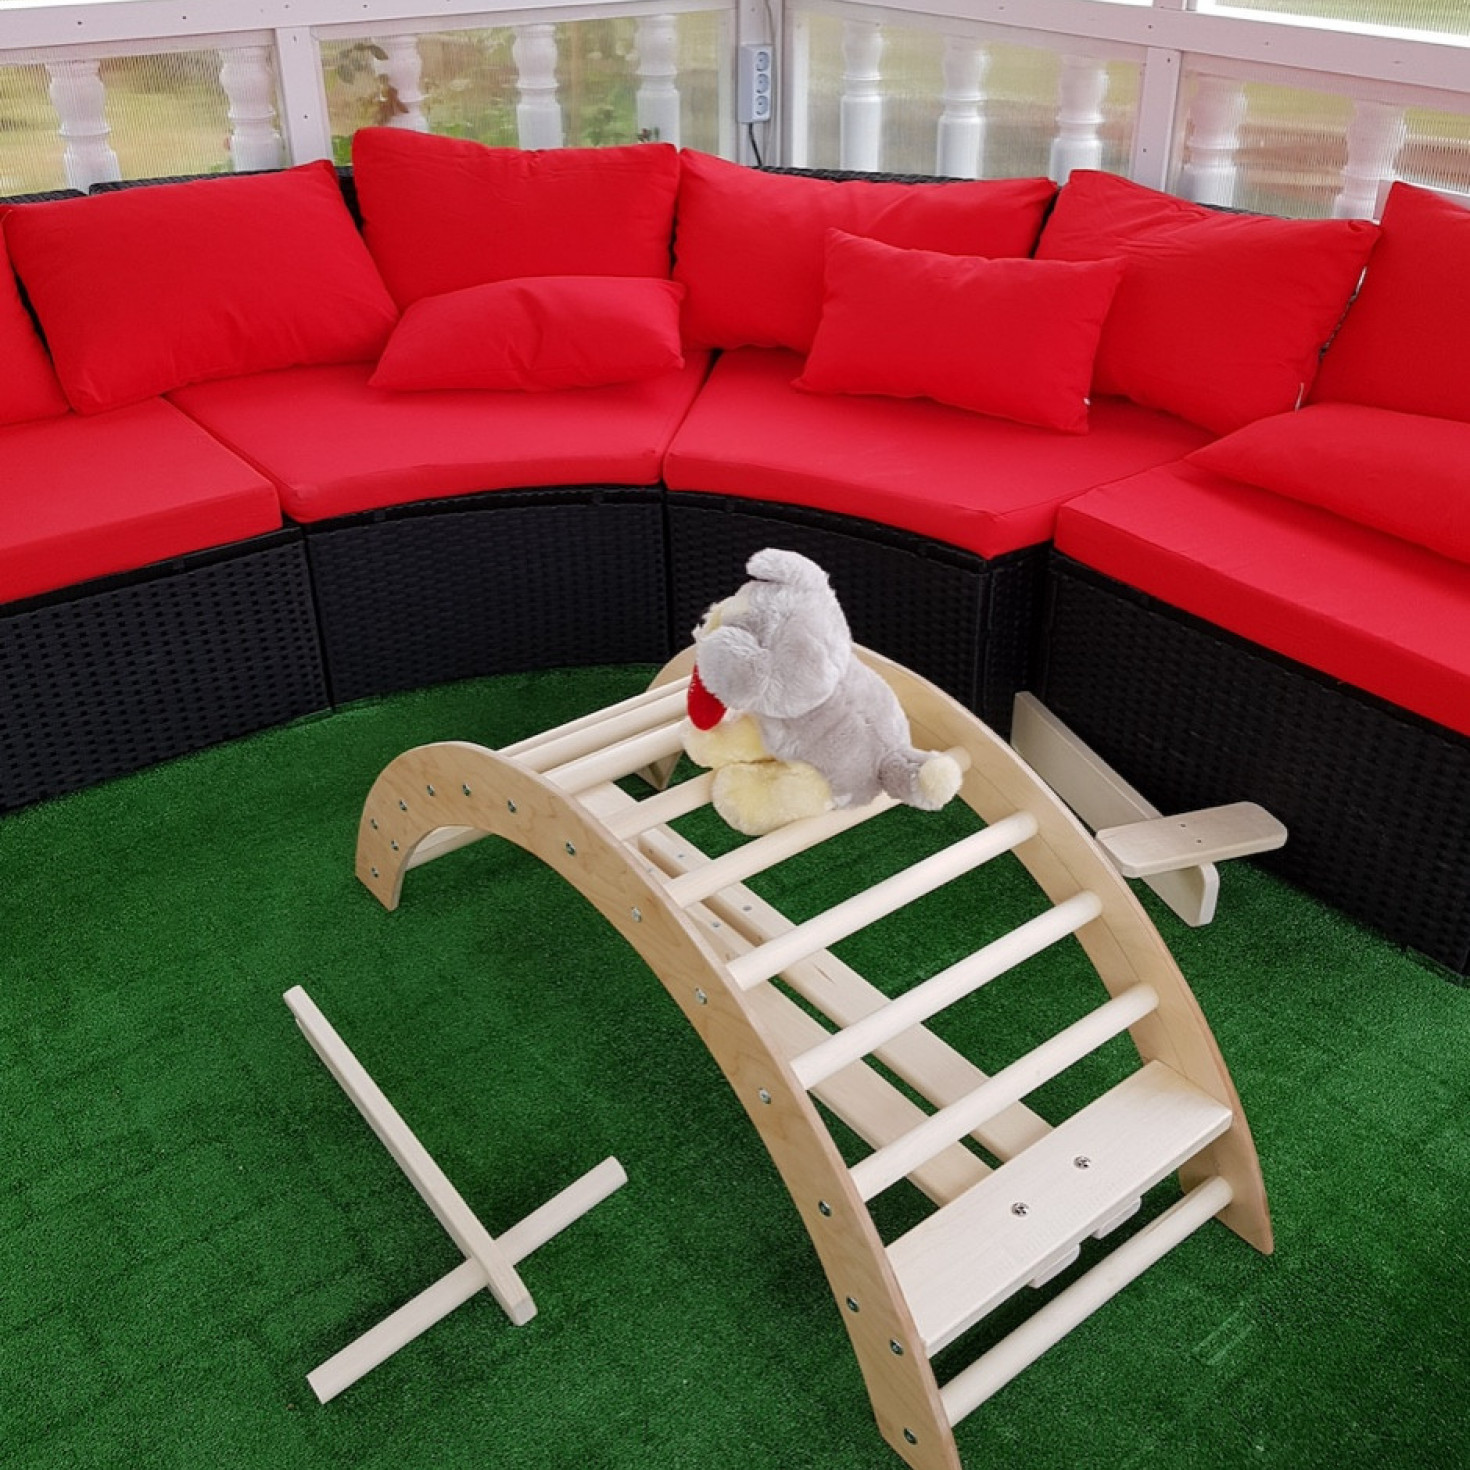 A wooden climbing arch next to a red couch